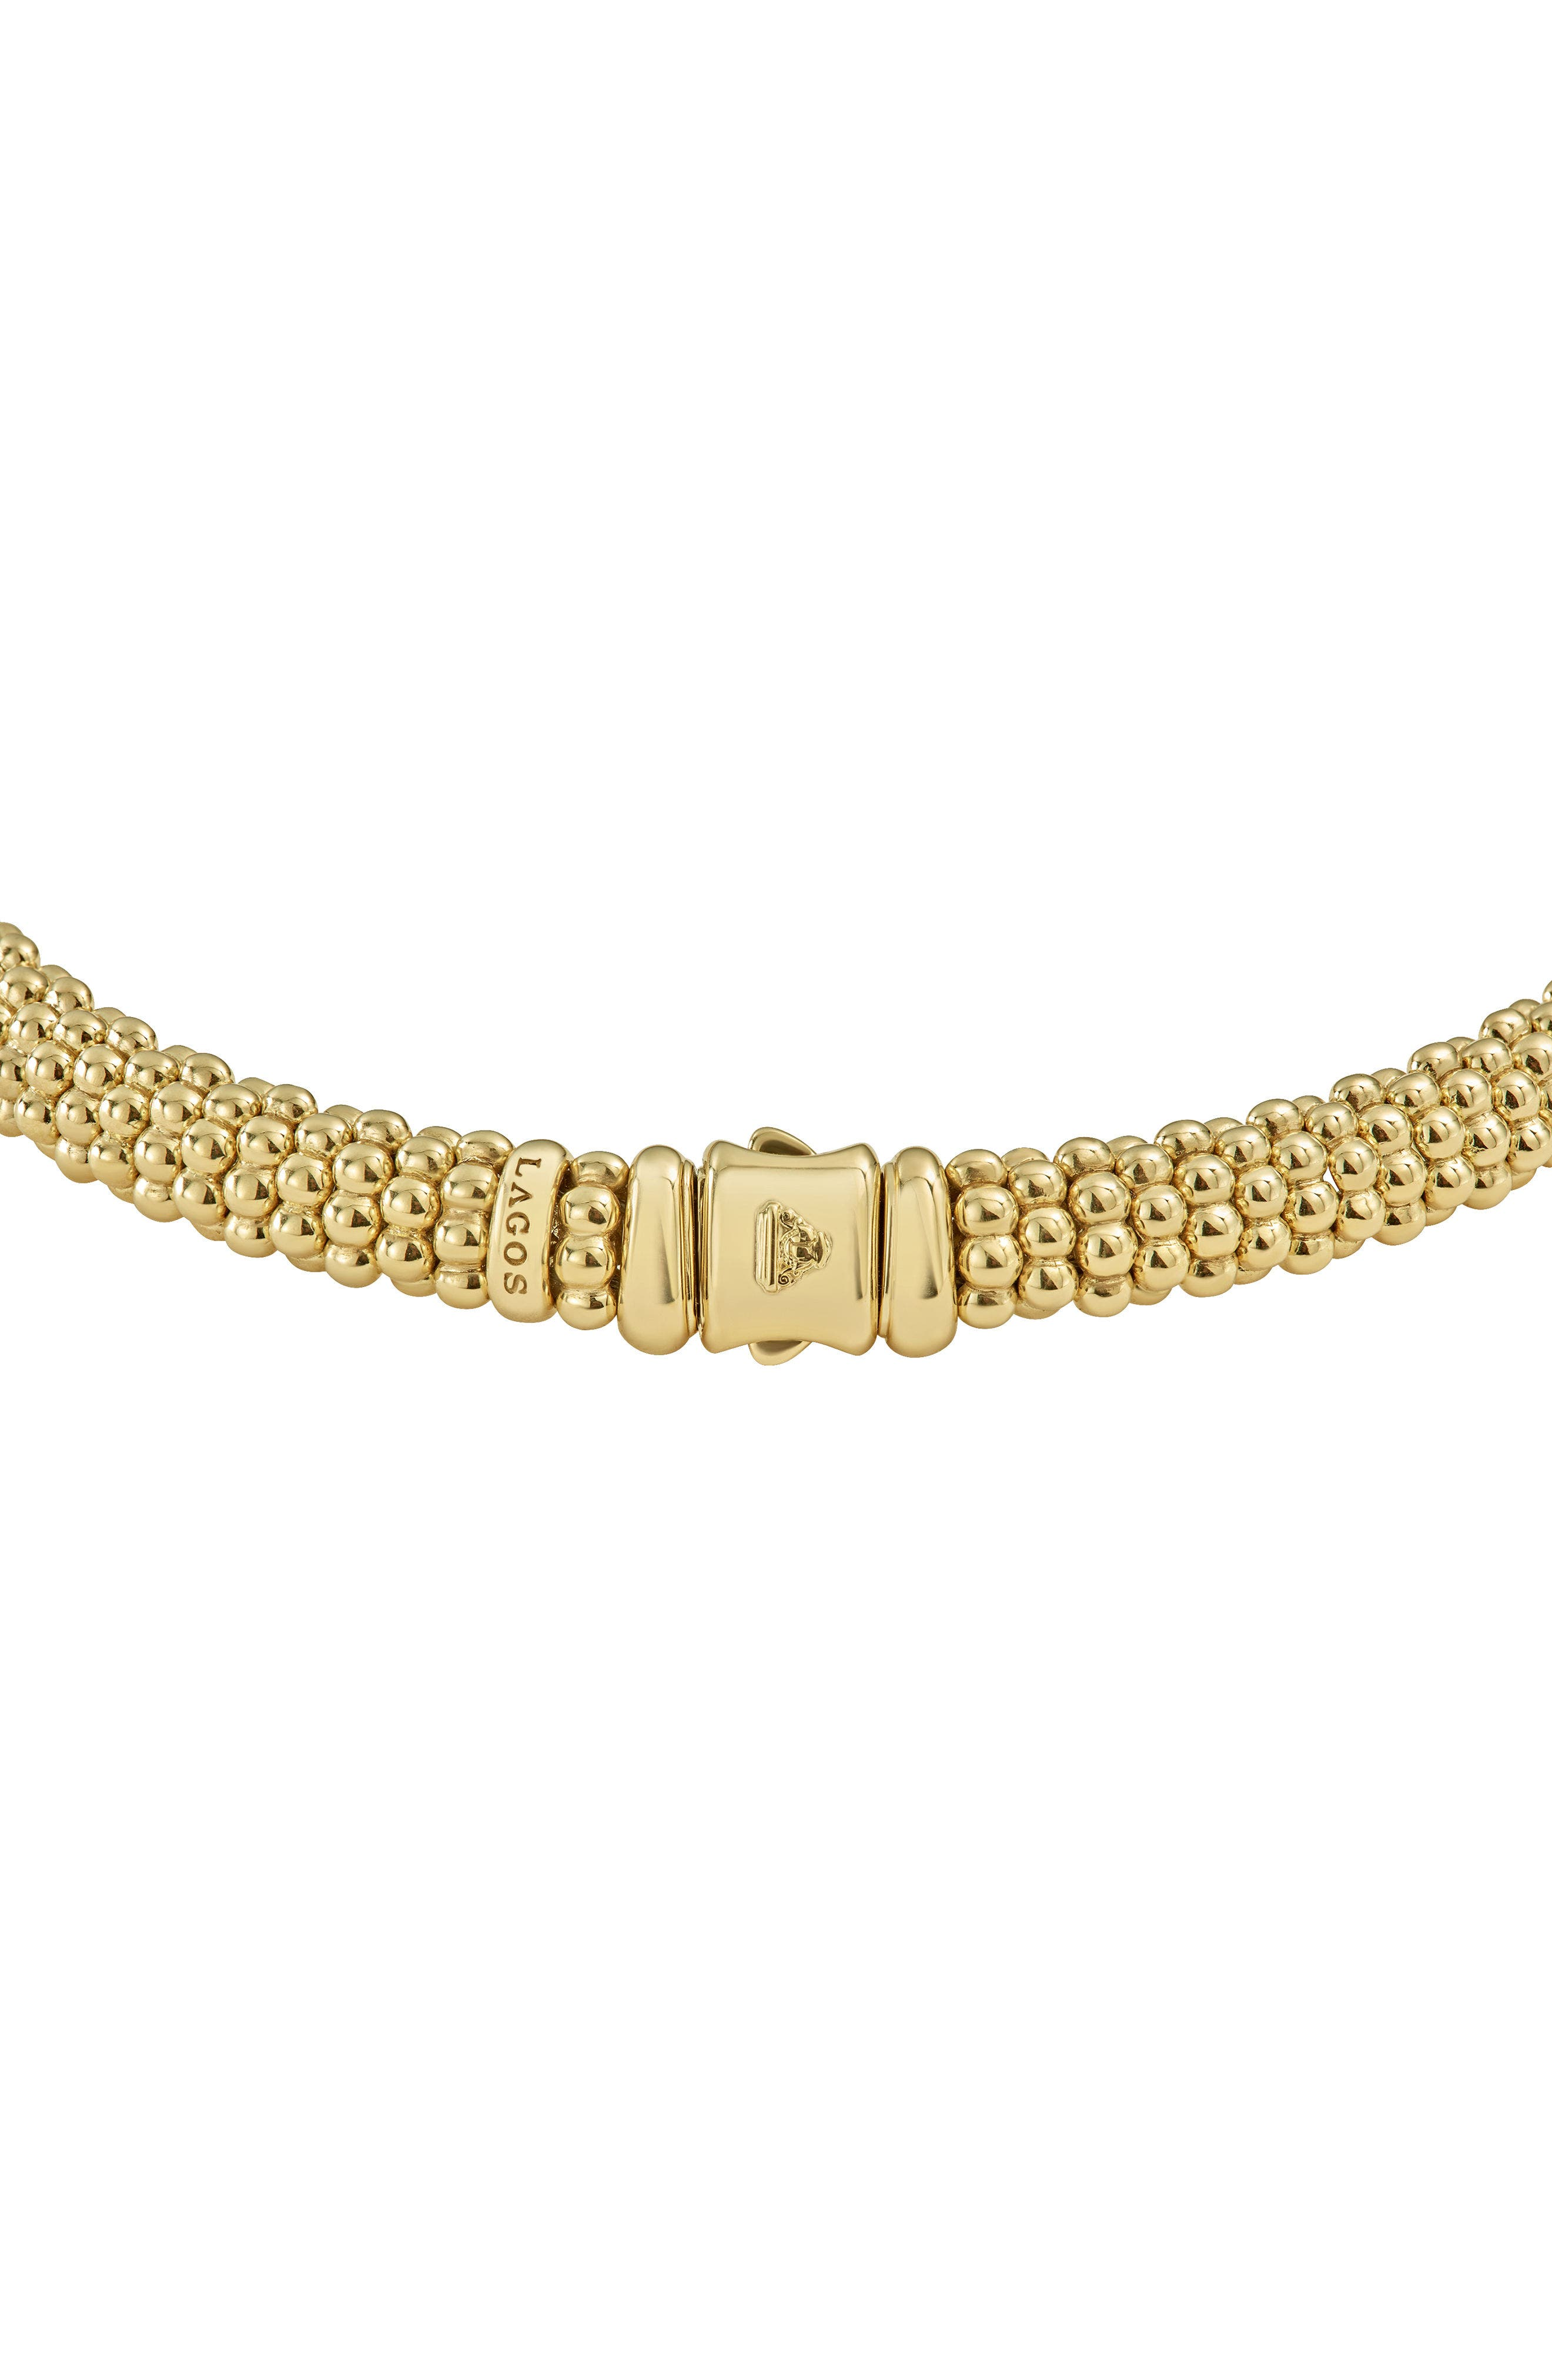 Caviar Gold Rope Necklace,                             Alternate thumbnail 3, color,                             GOLD